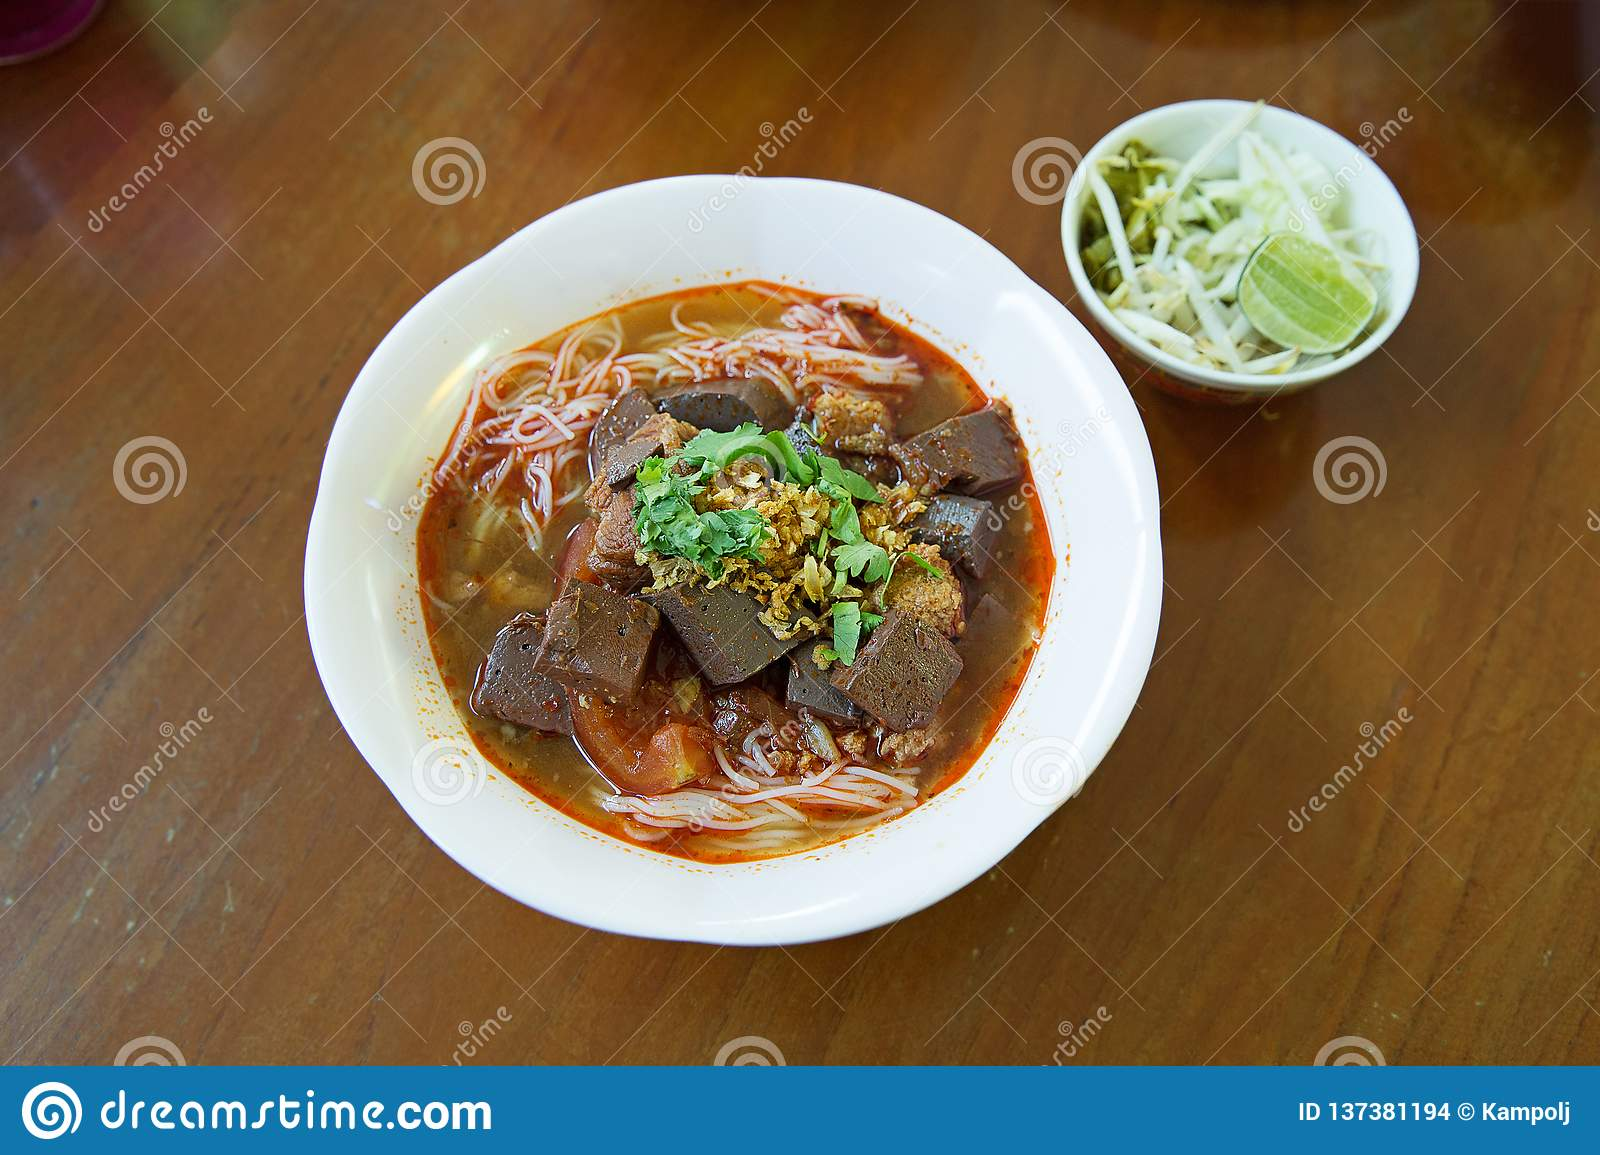 rice noodles with spicy pork sauce, a famous food of